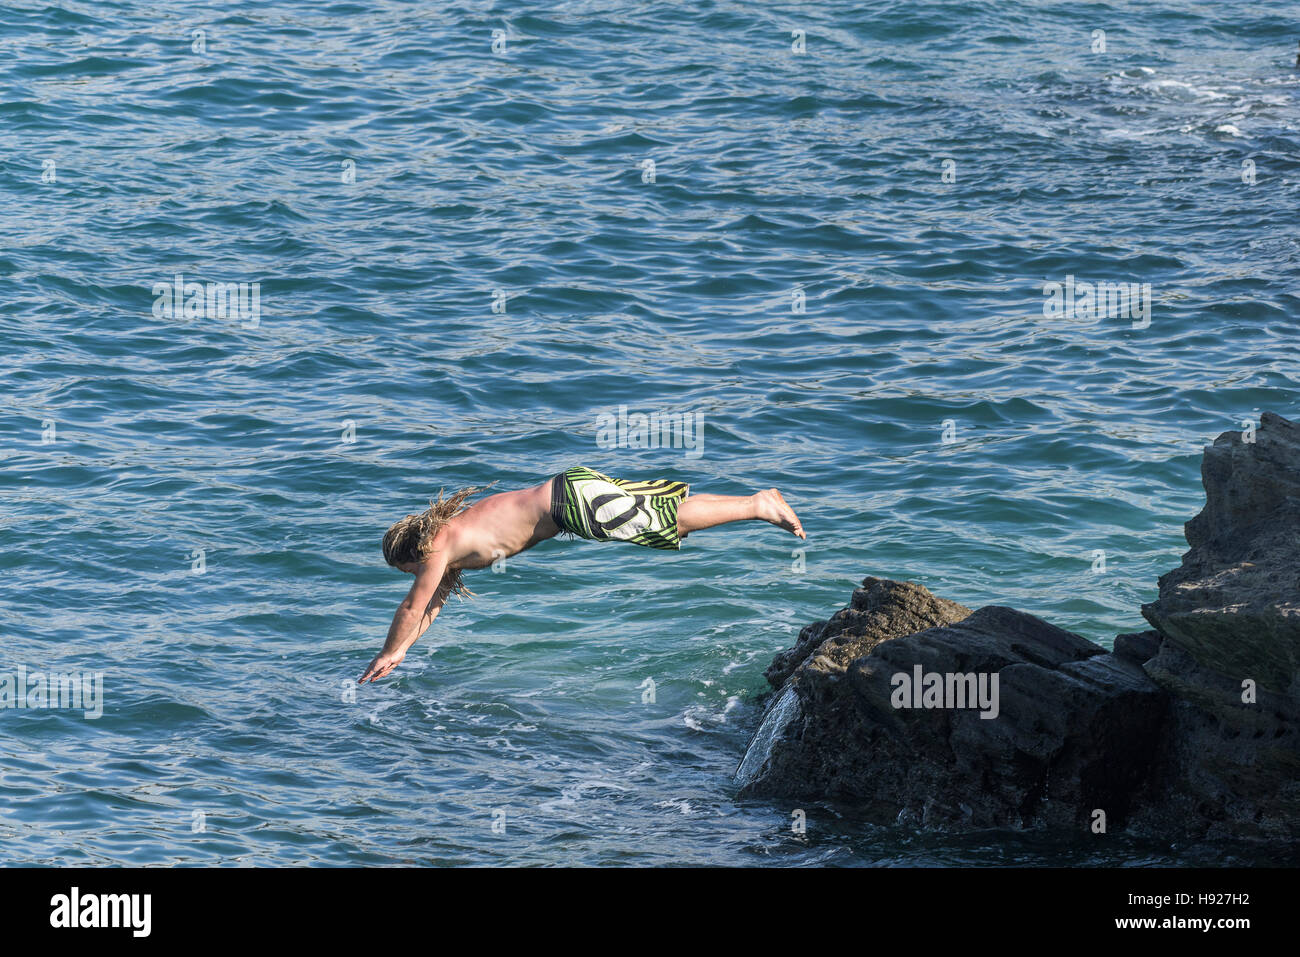 A holidaymaker dives into the sea off rocks on The Headland in Newquay in Cornwall. - Stock Image